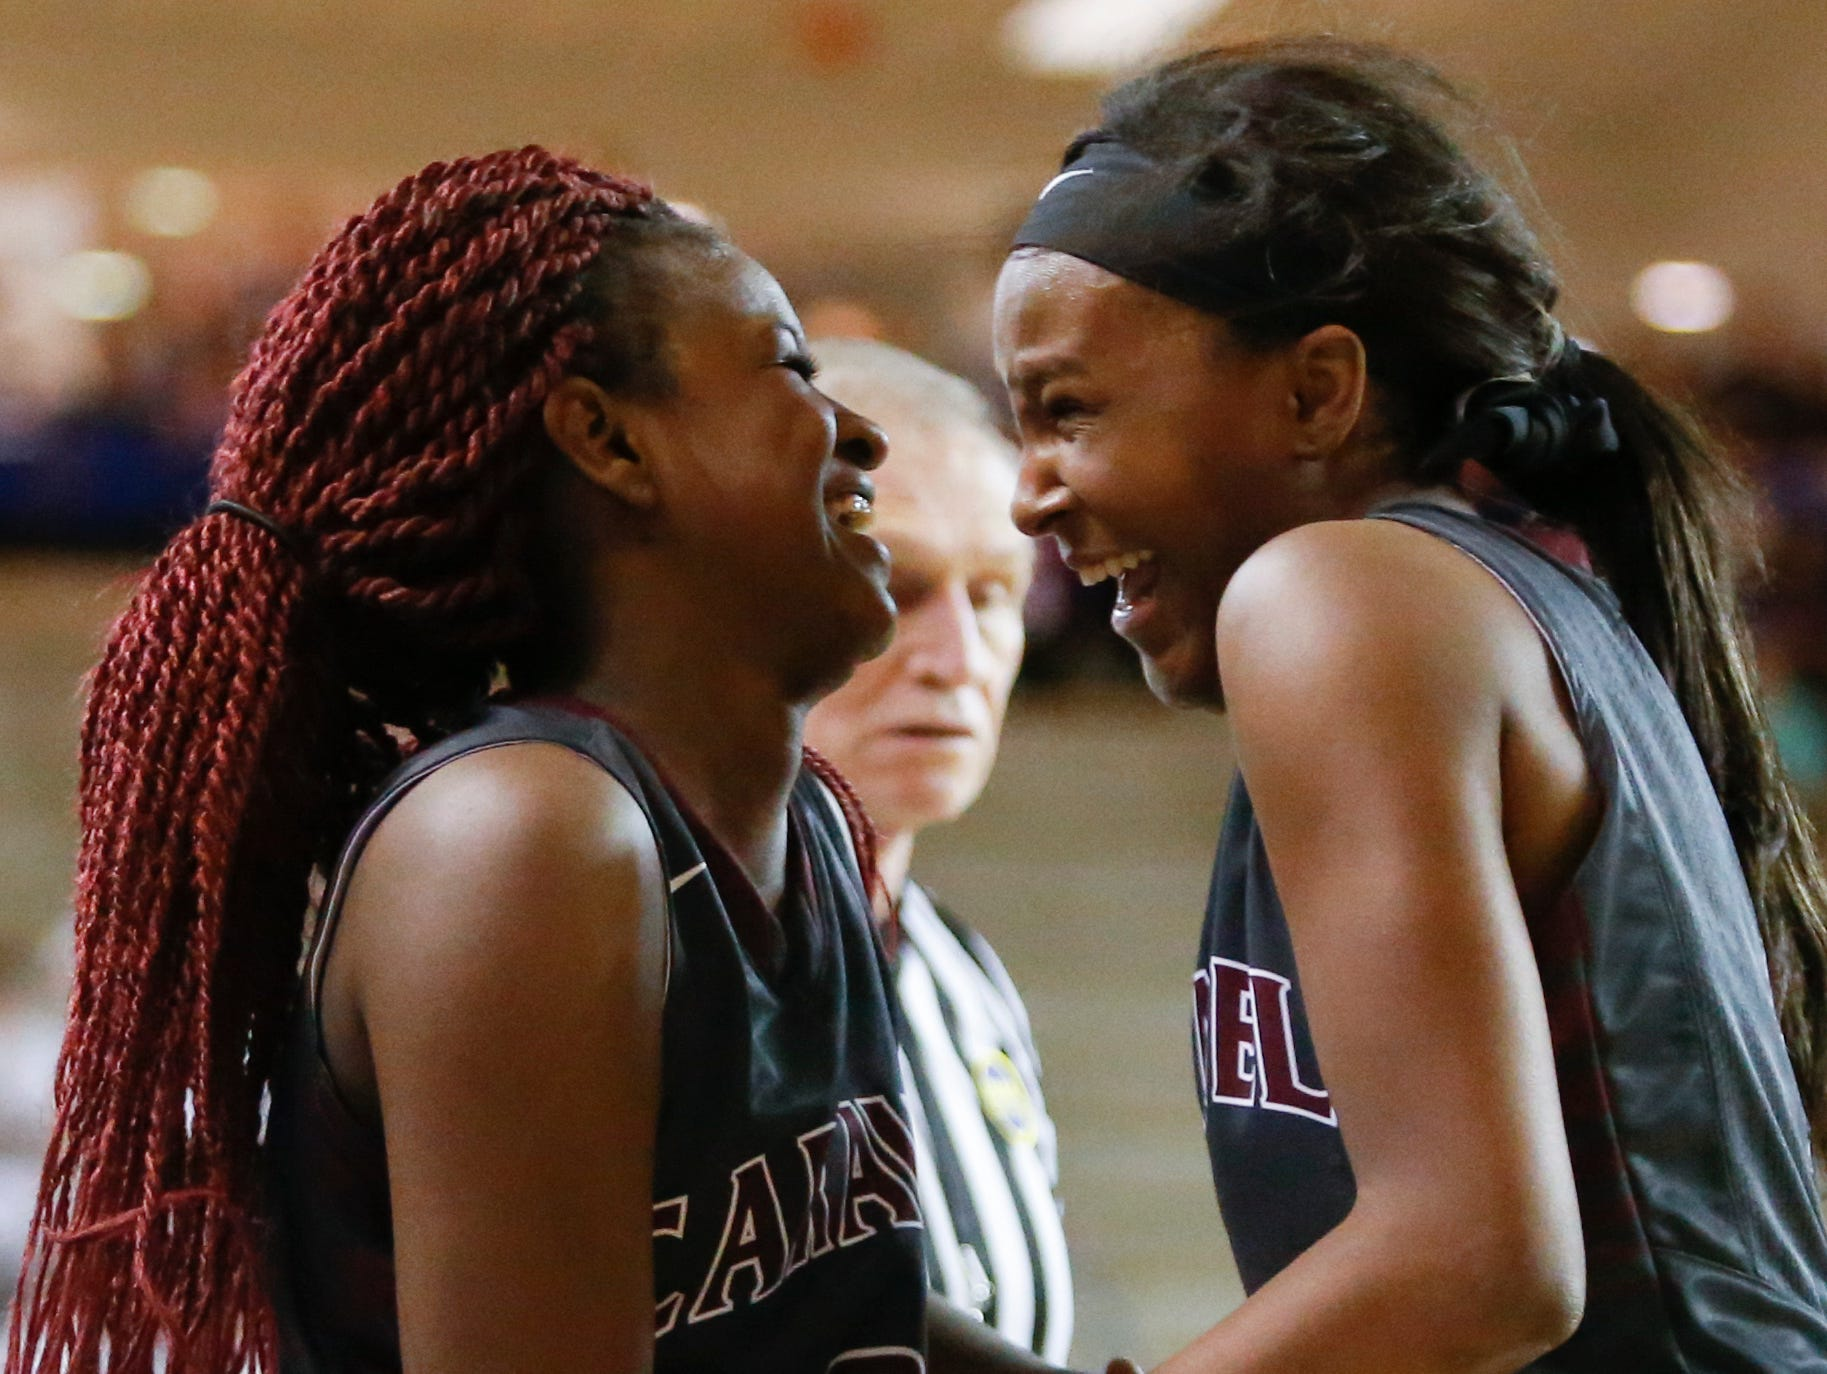 Caravel's Maia Bryson (left) and Sasha Marvel have a laugh over Bryson's fall as she was fouled late in the second half of Caravel's win in a DIAA state tournament semifinal Wednesday at the Bob Carpenter Center.